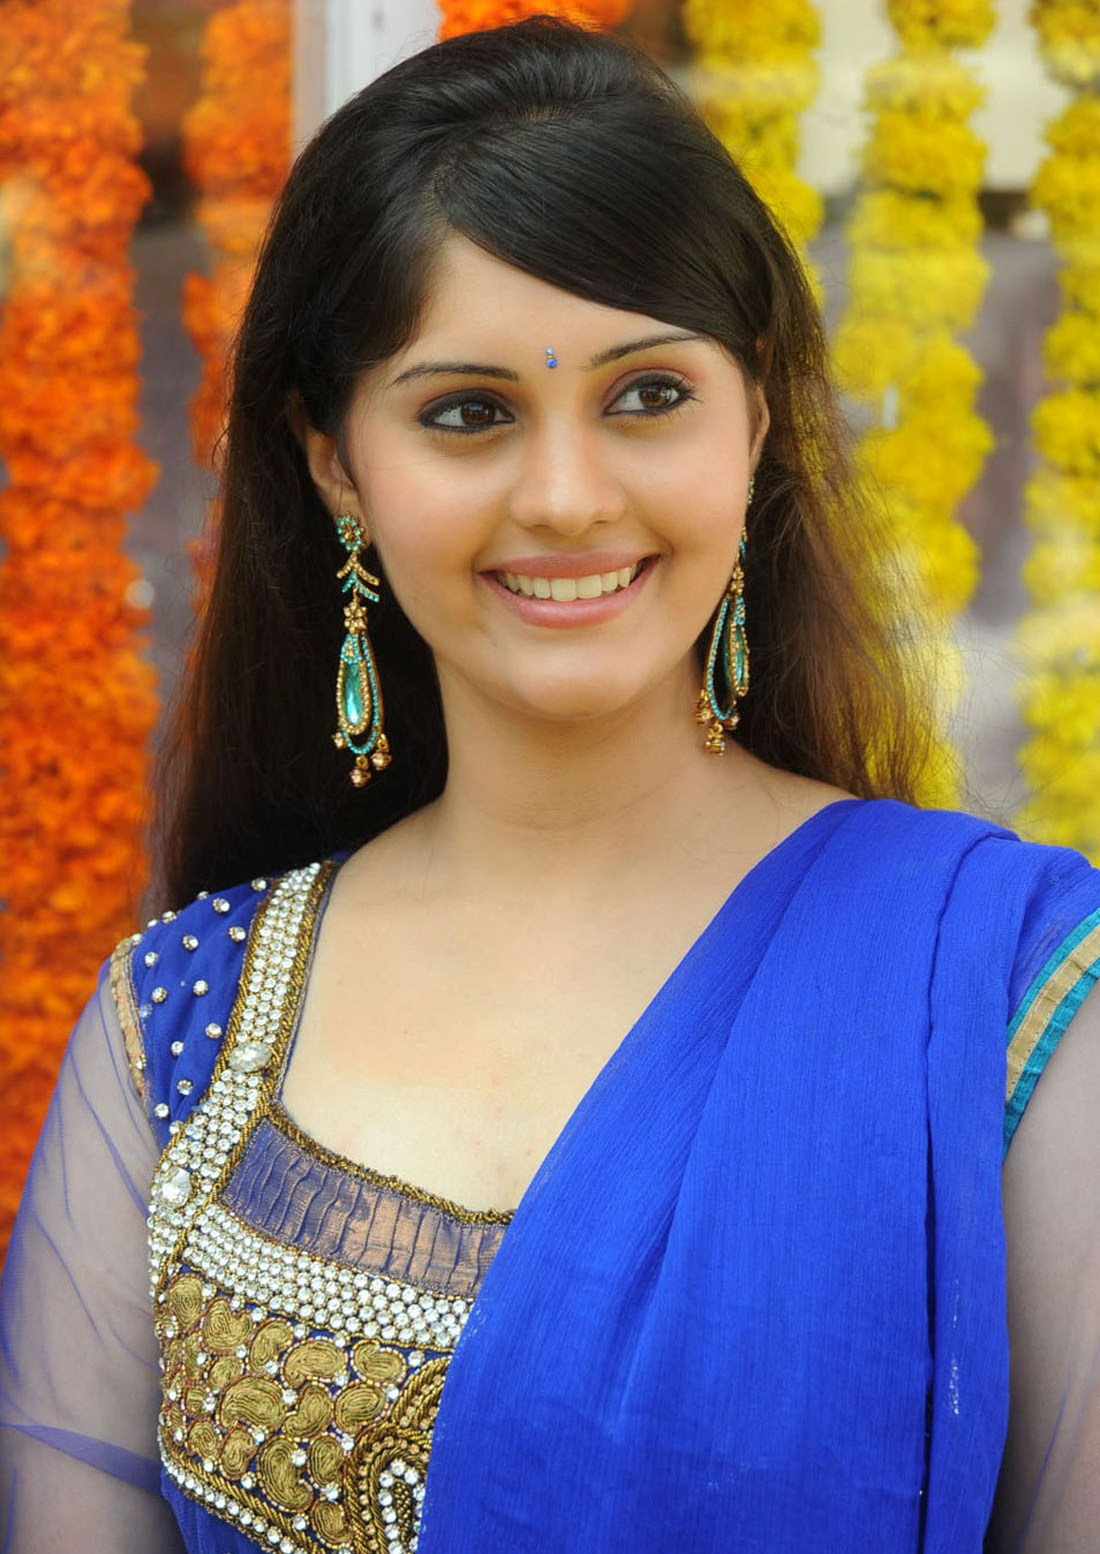 ivan vera mathiri actress surabhi hd view - cini focus